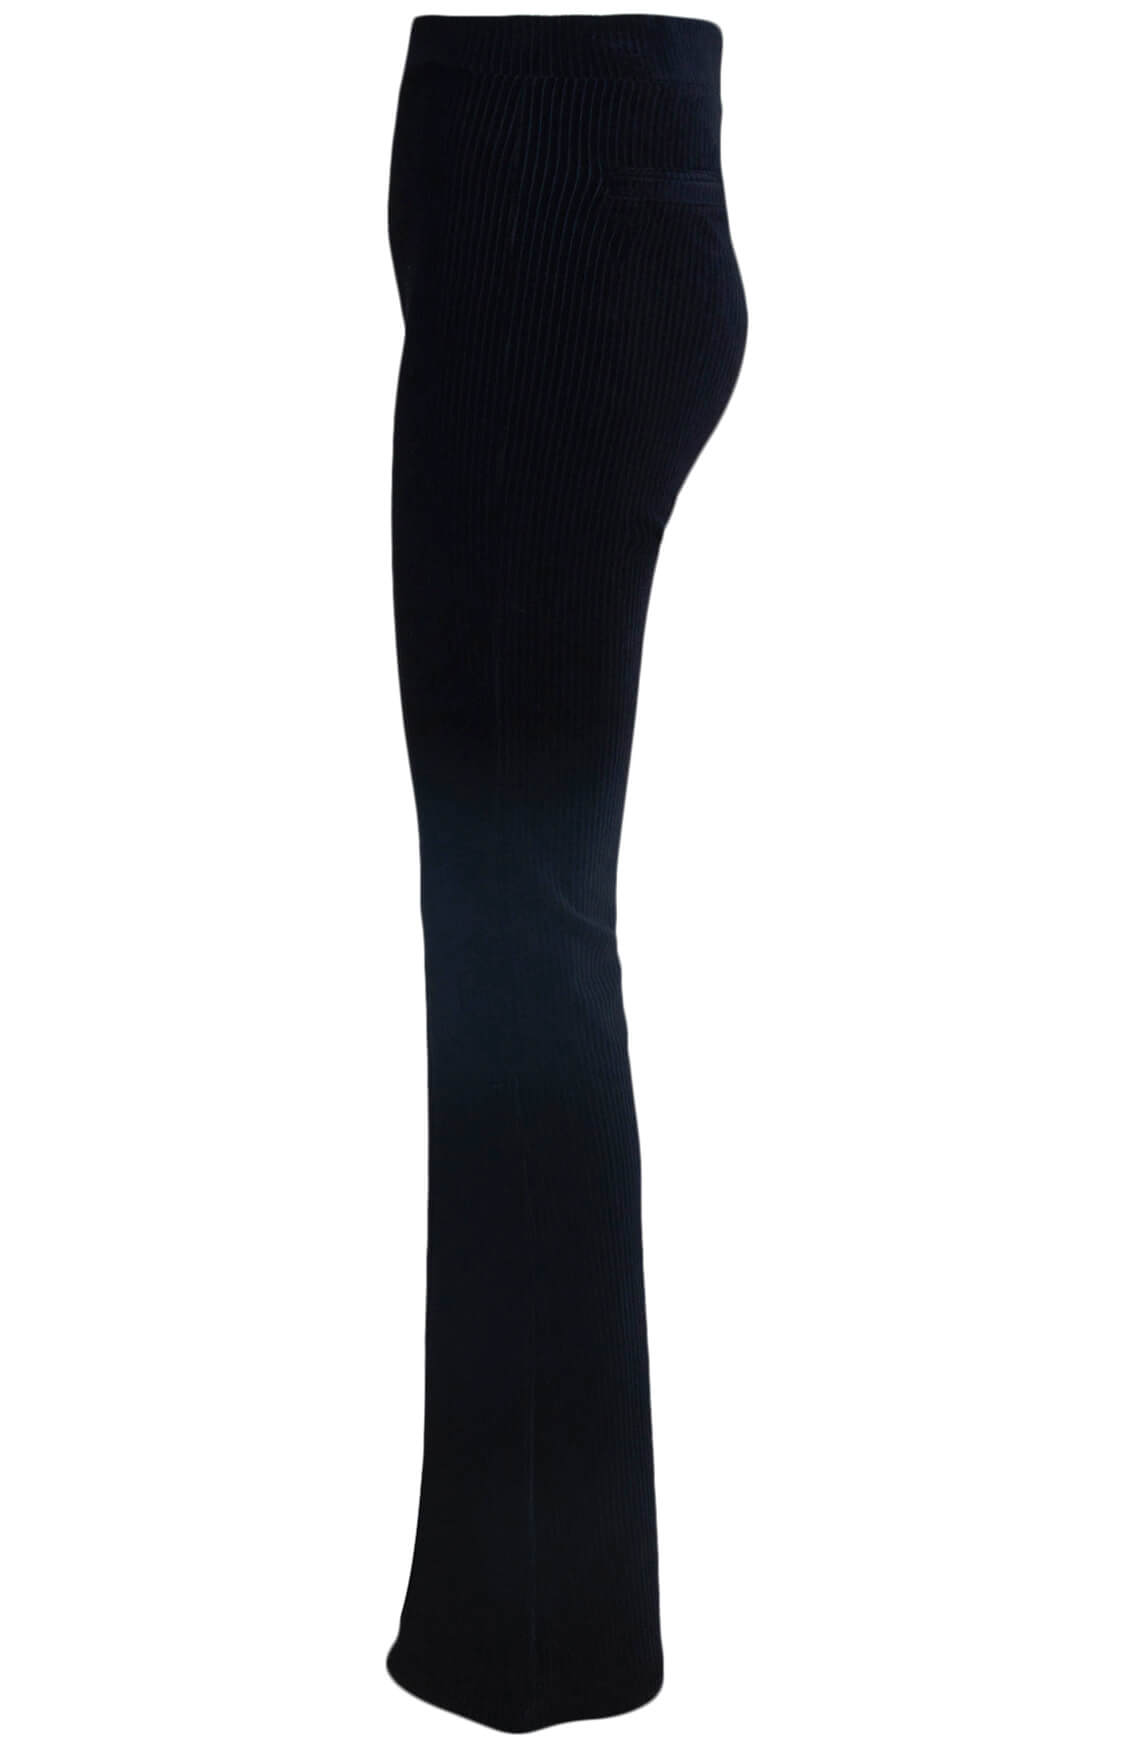 Alix The Label Dames Rib velvet broek zwart